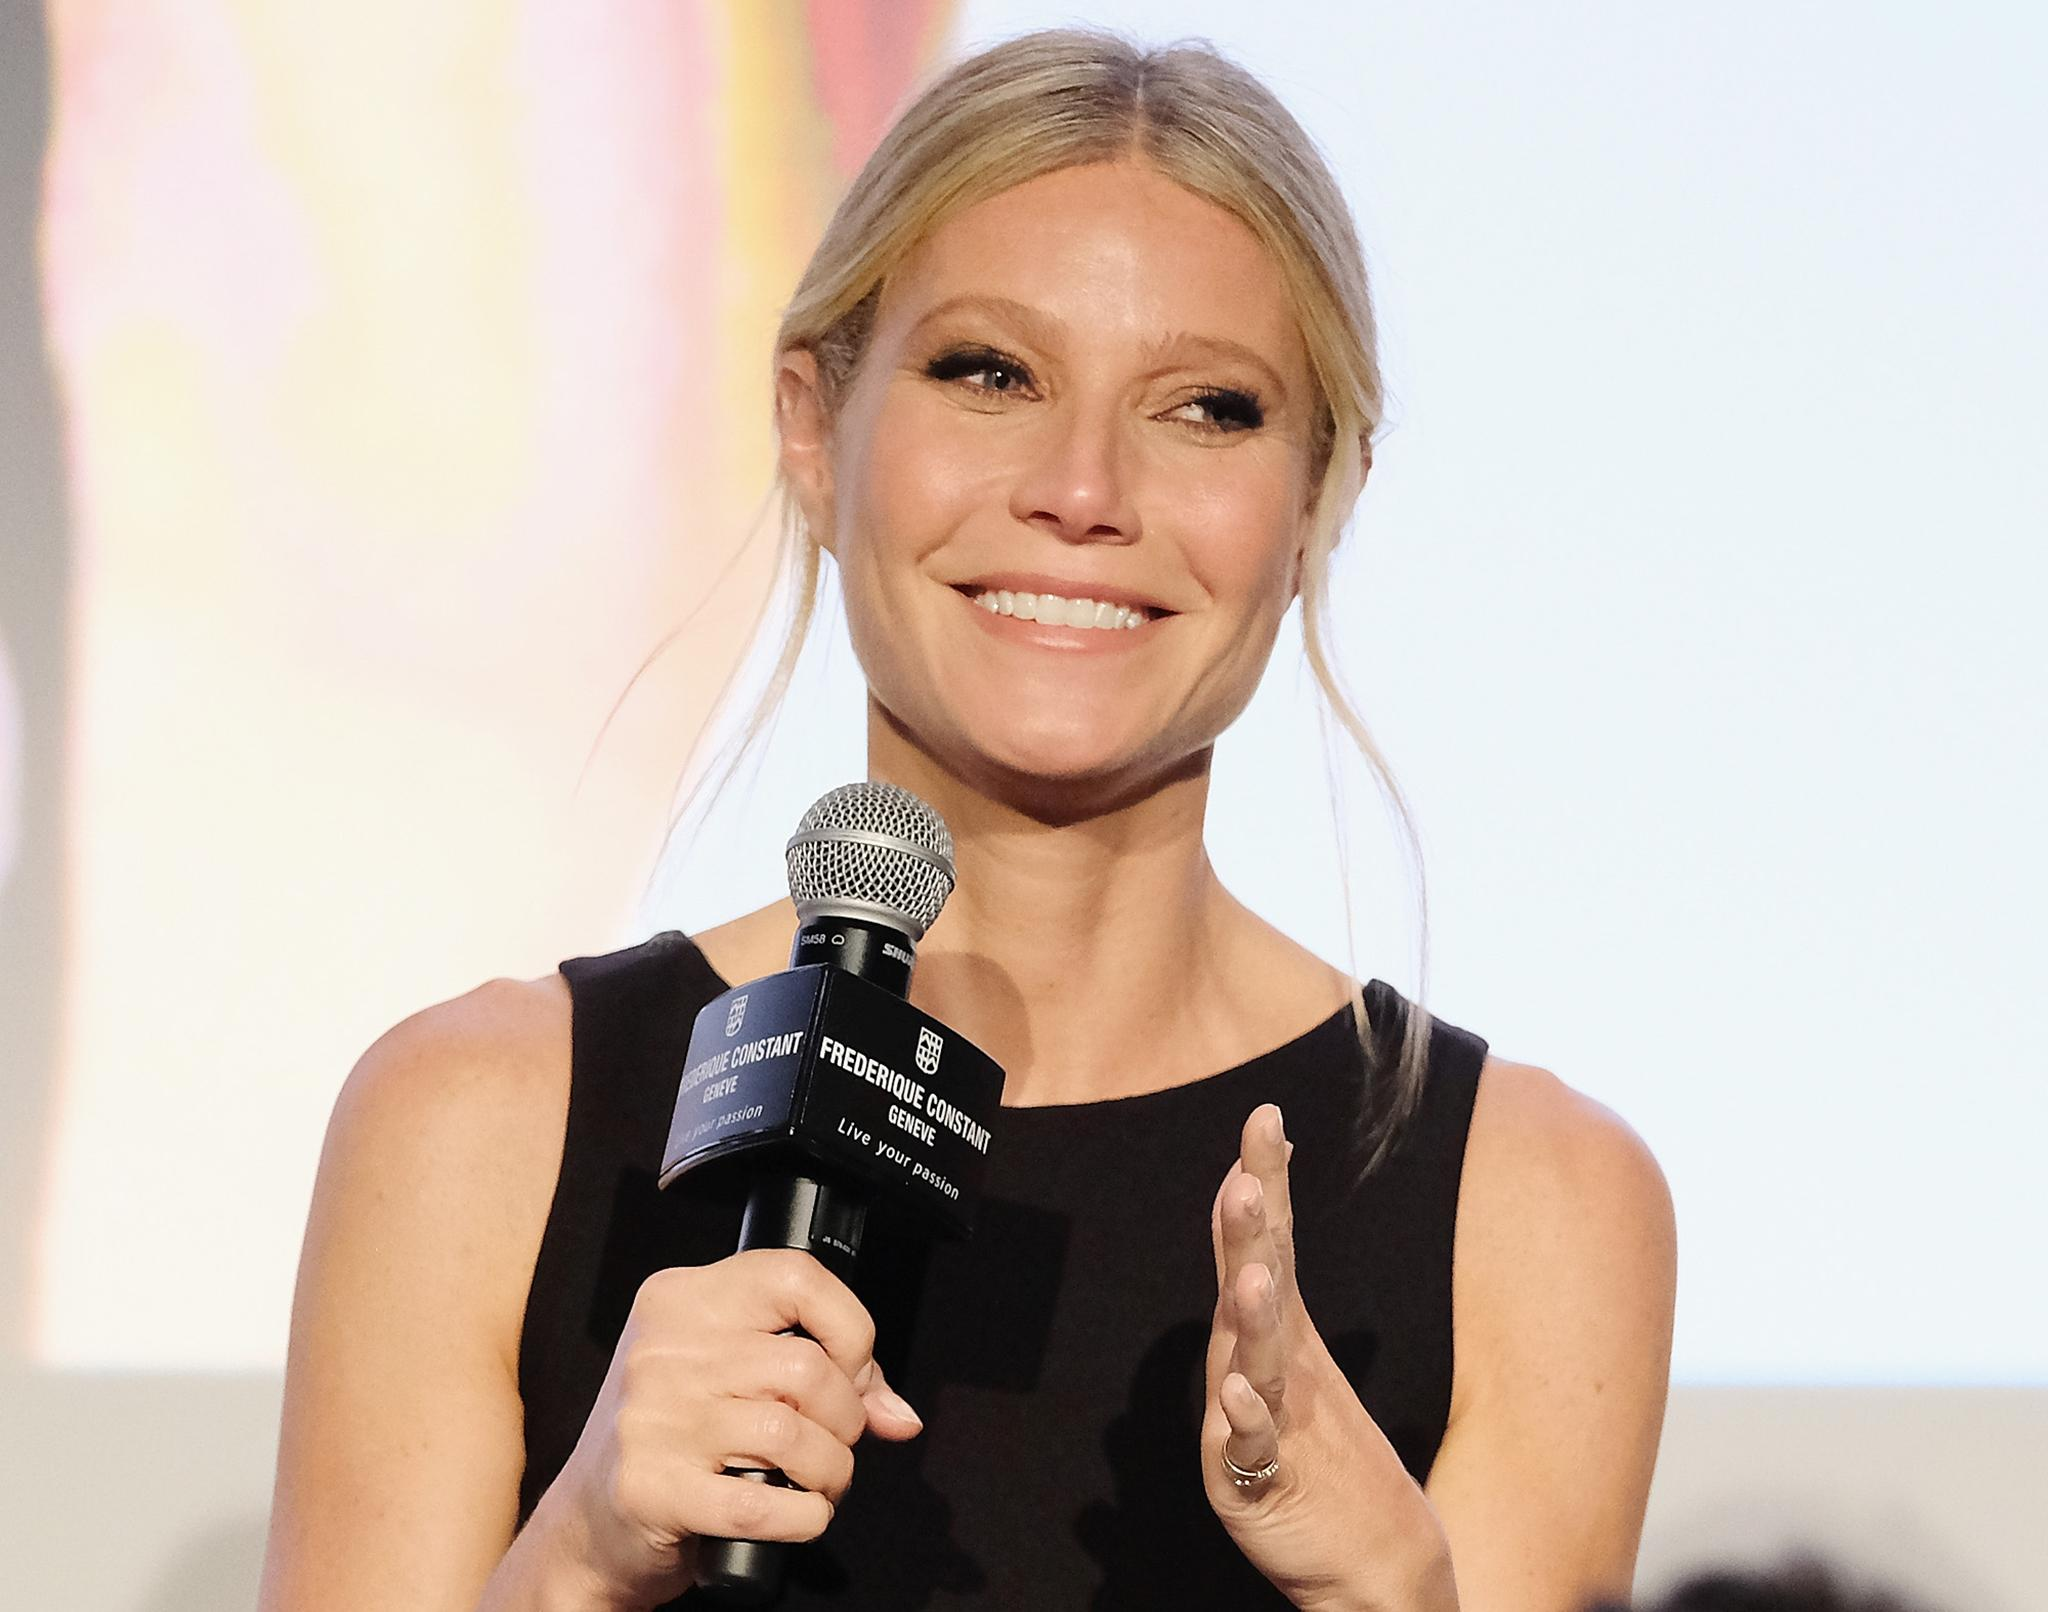 valentines day gift for families - Valentines Day 2017 Gwyneth Paltrow s Goop t guide